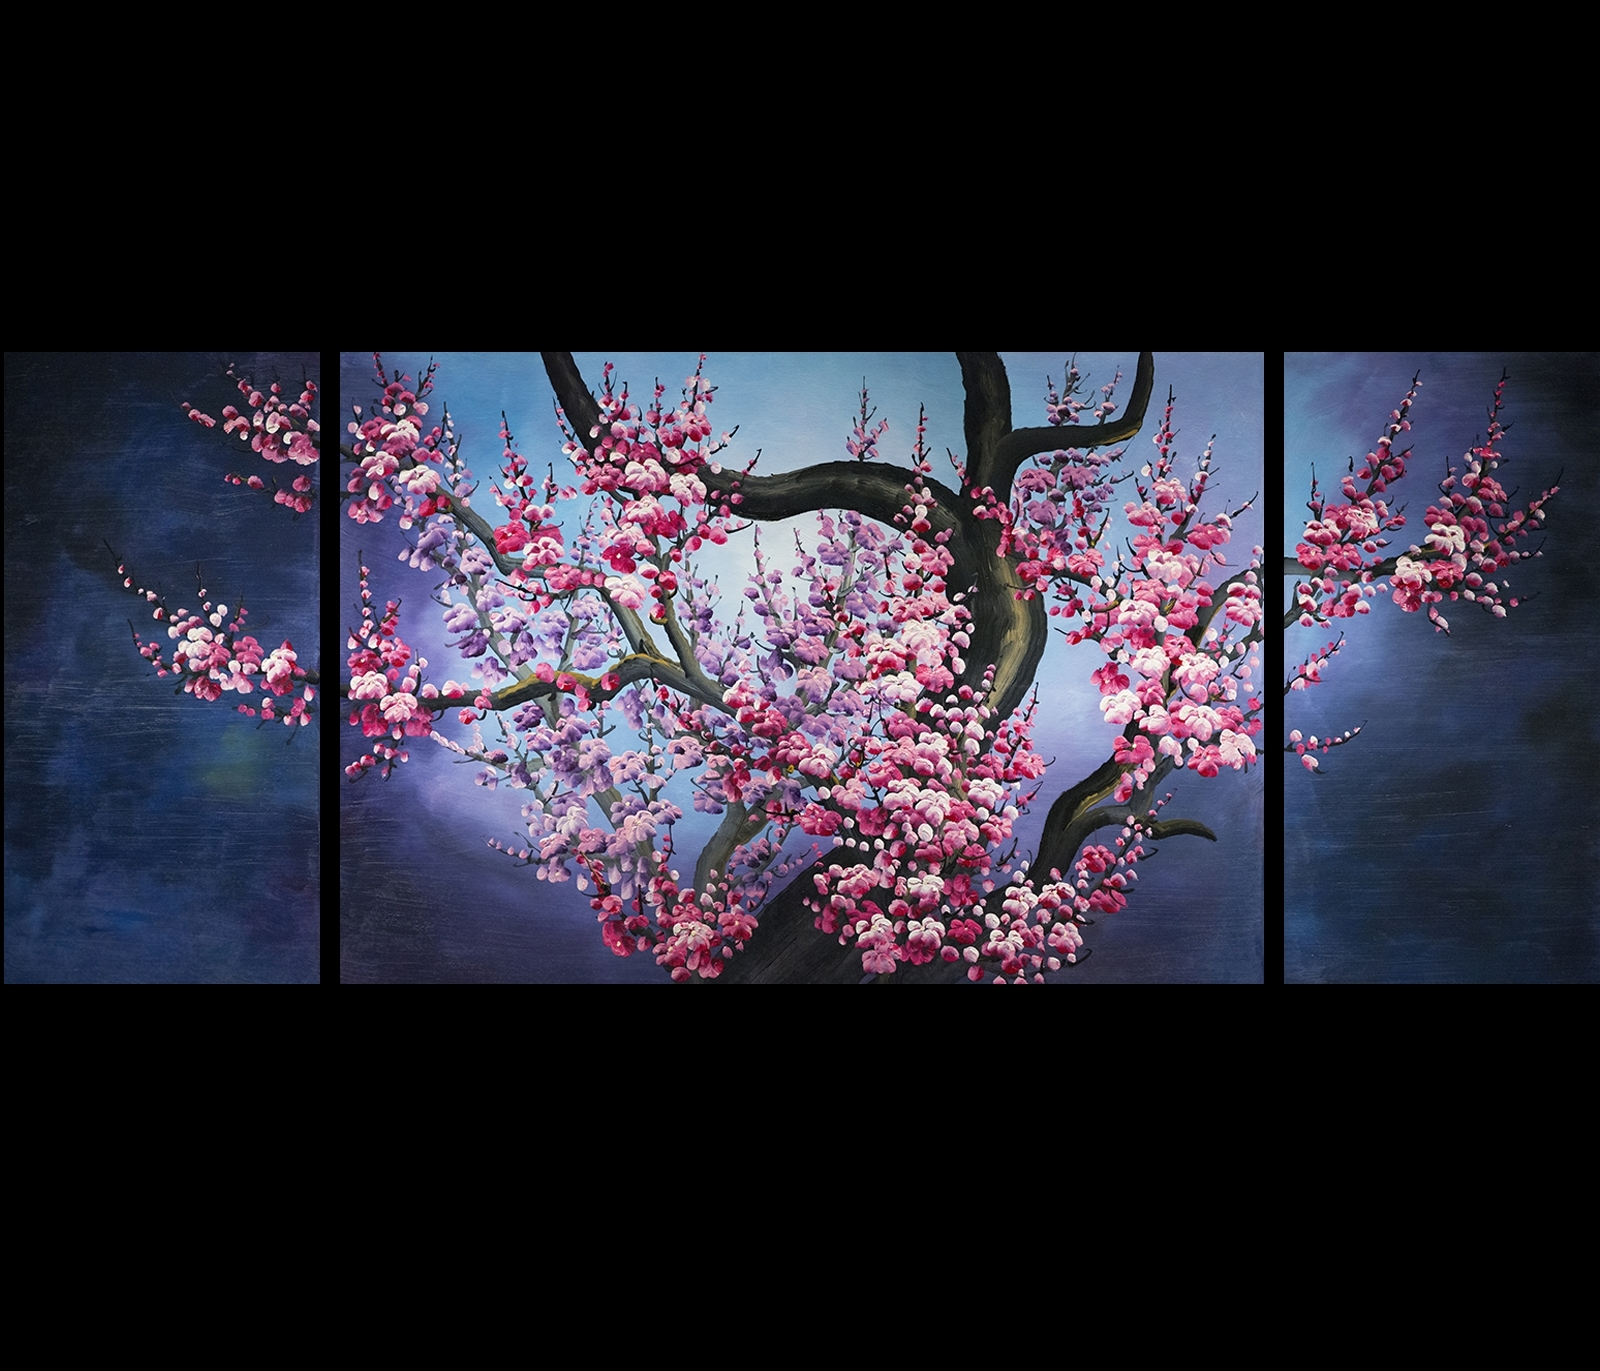 Japanese Cherry Blossom Painting Abstract Art Canvas Wall Art Within Most Current Cherry Blossom Oil Painting Modern Abstract Wall Art (View 15 of 20)